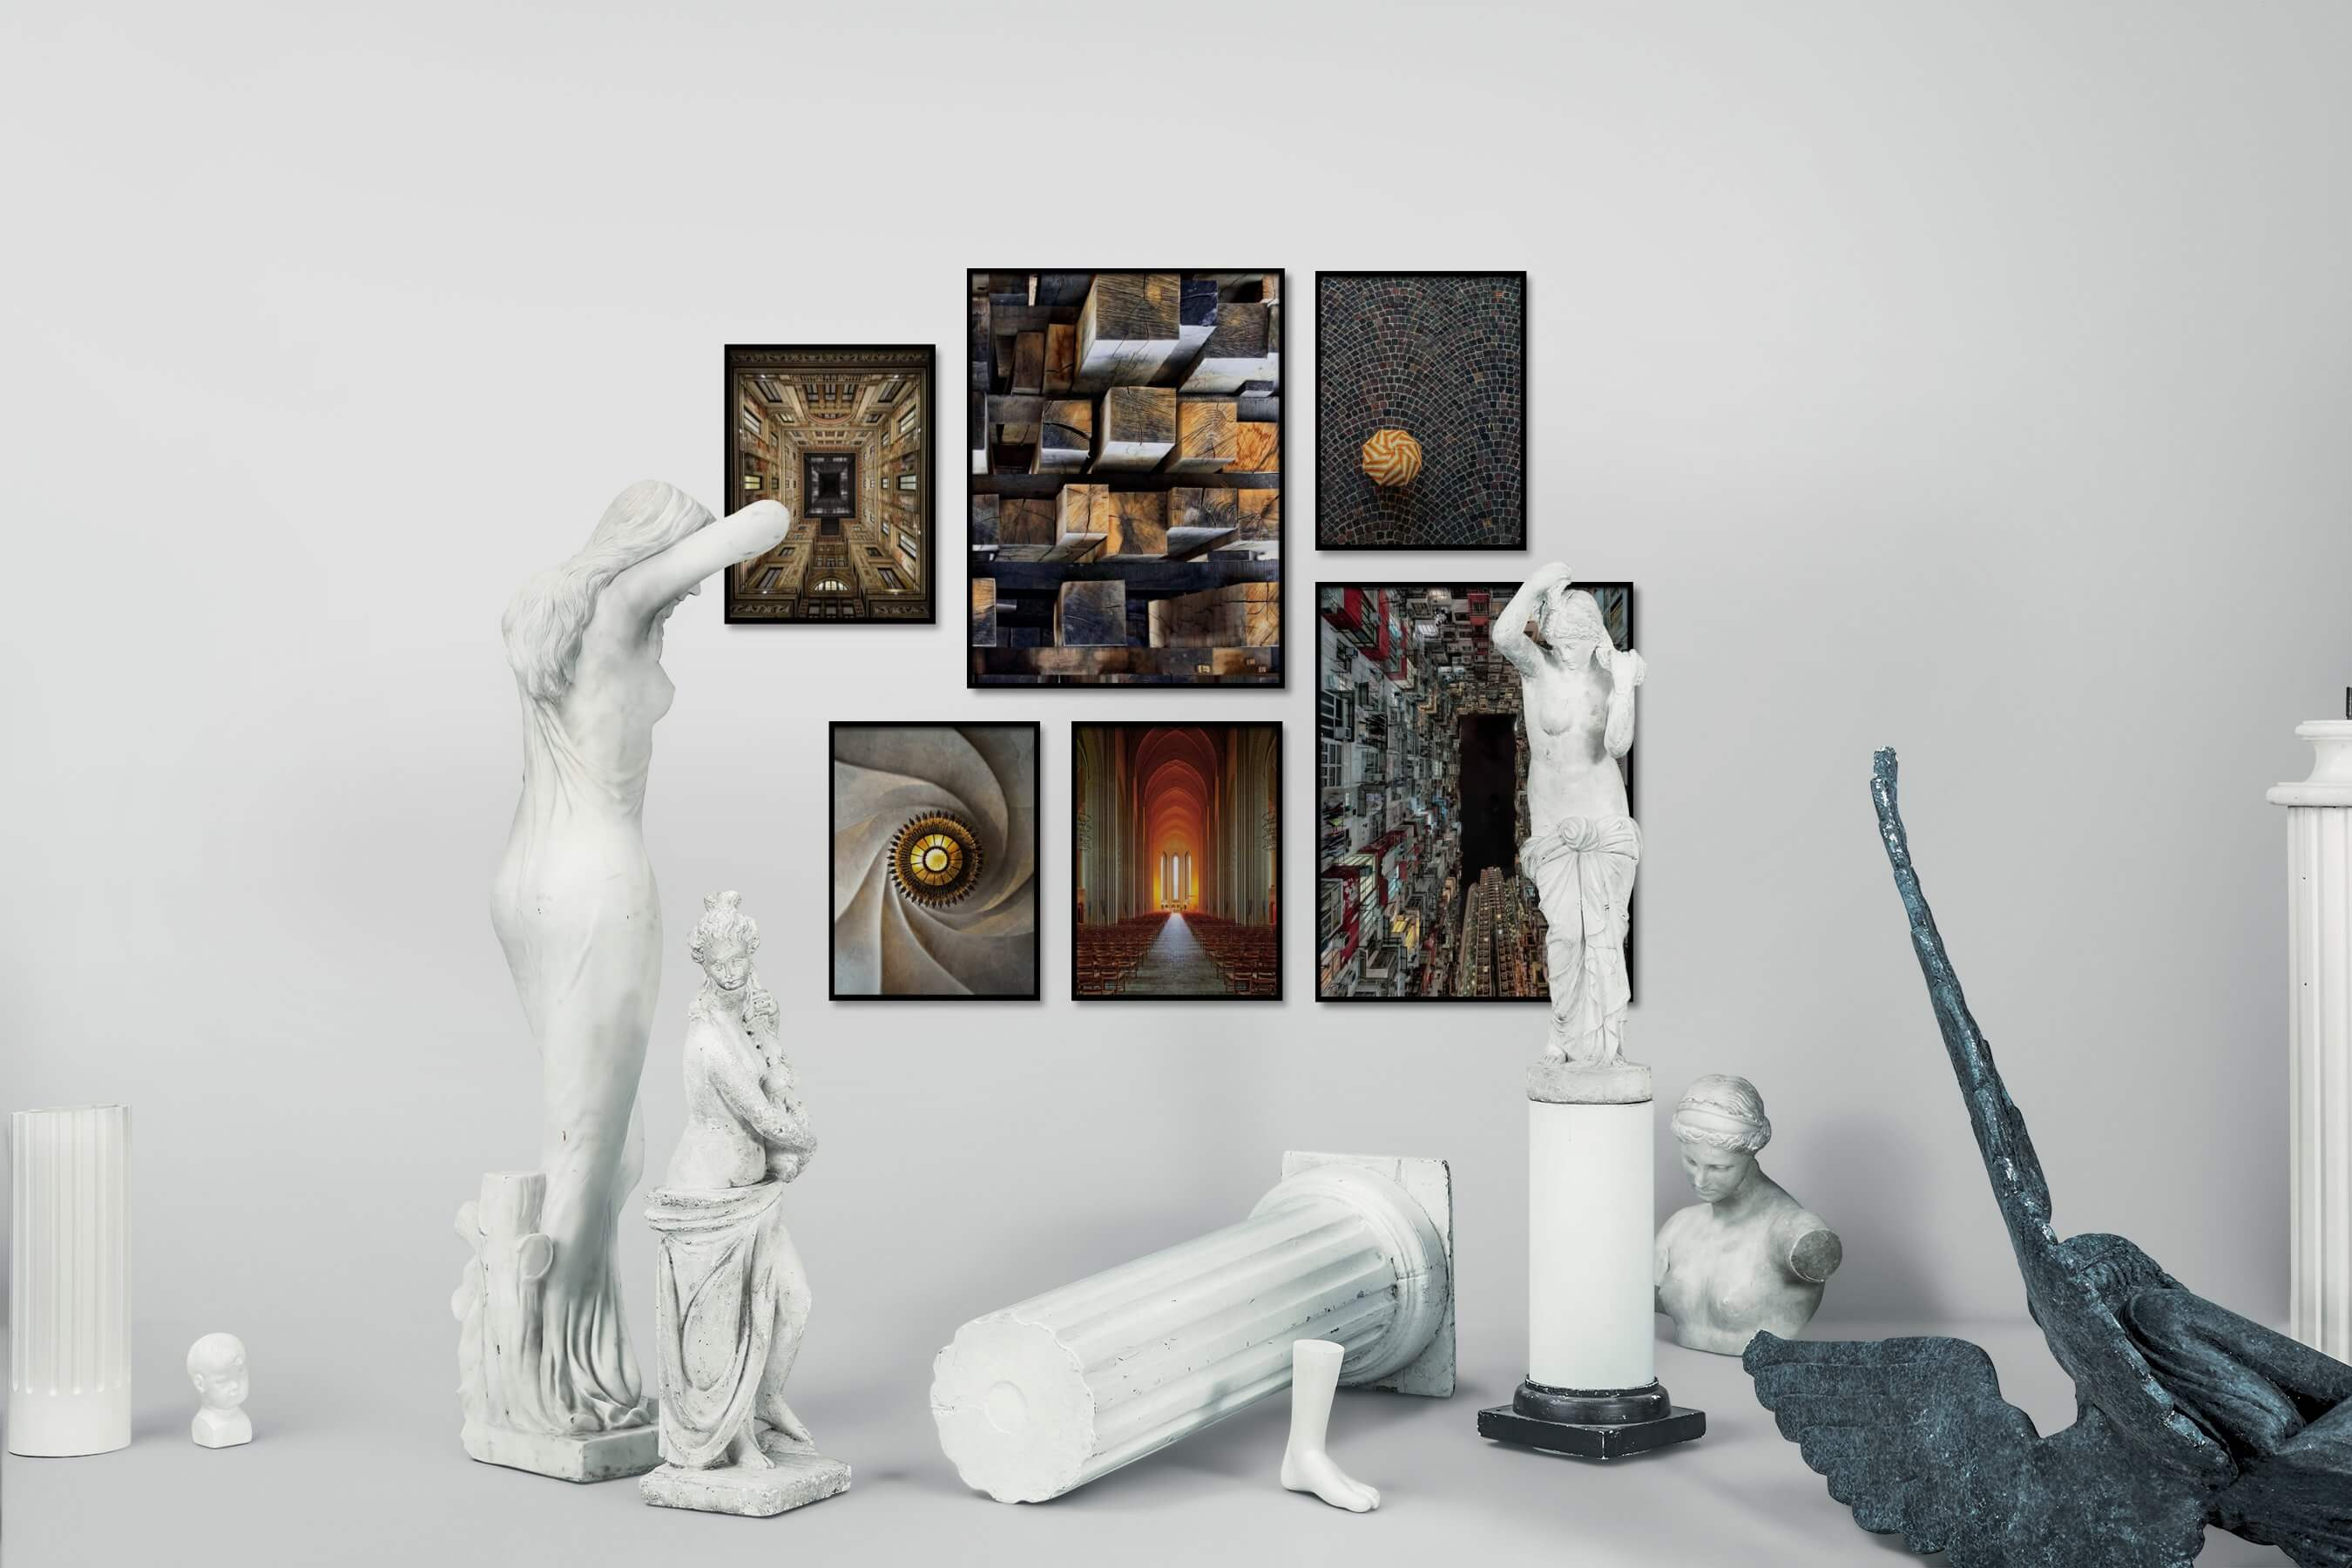 Gallery wall idea with six framed pictures arranged on a wall depicting For the Maximalist, Vintage, City Life, Americana, For the Moderate, and Mindfulness